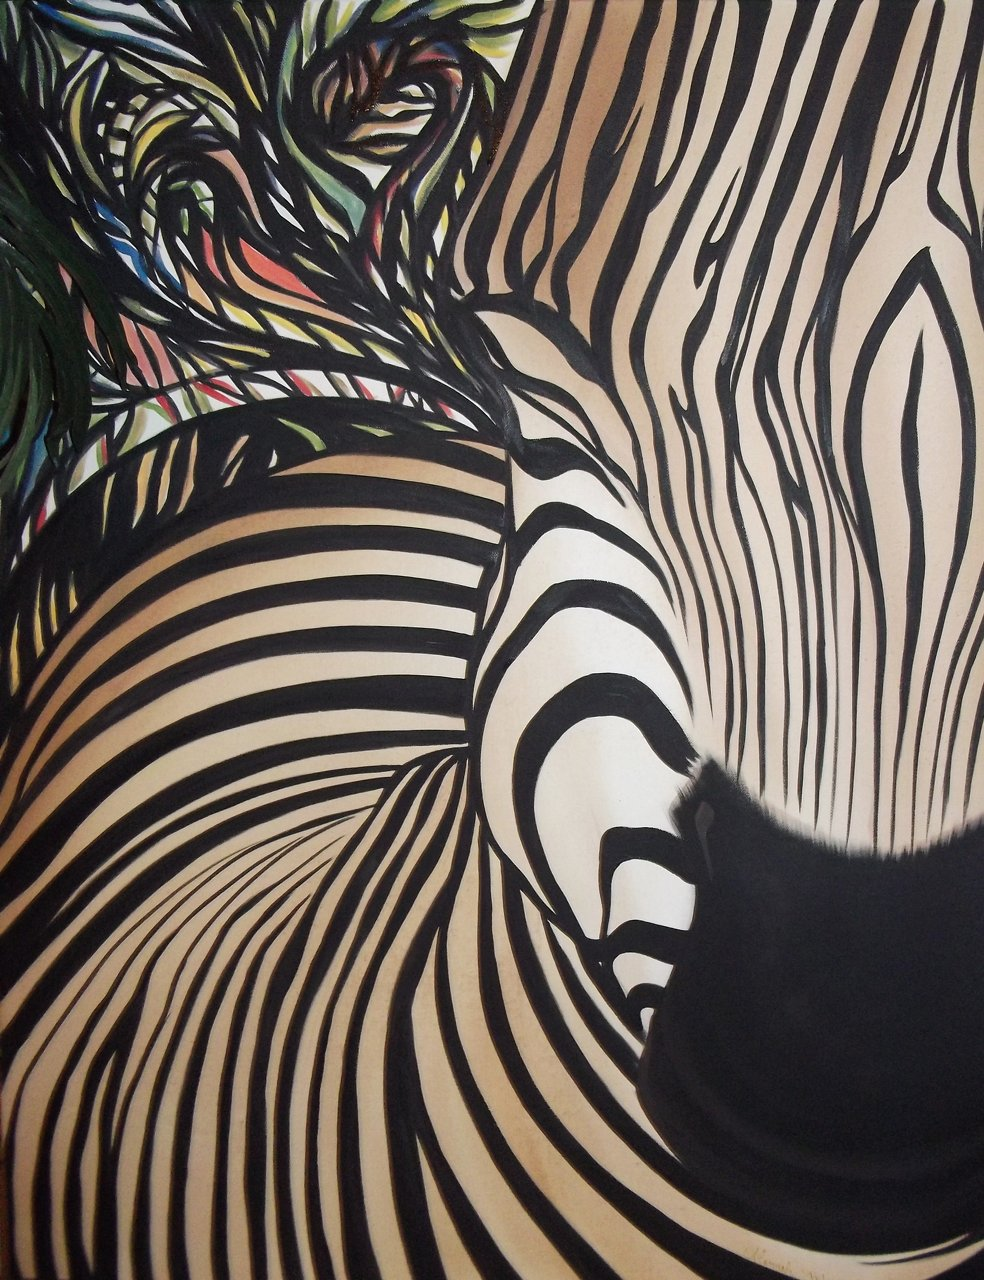 Hypnotic stripes 4x5ft